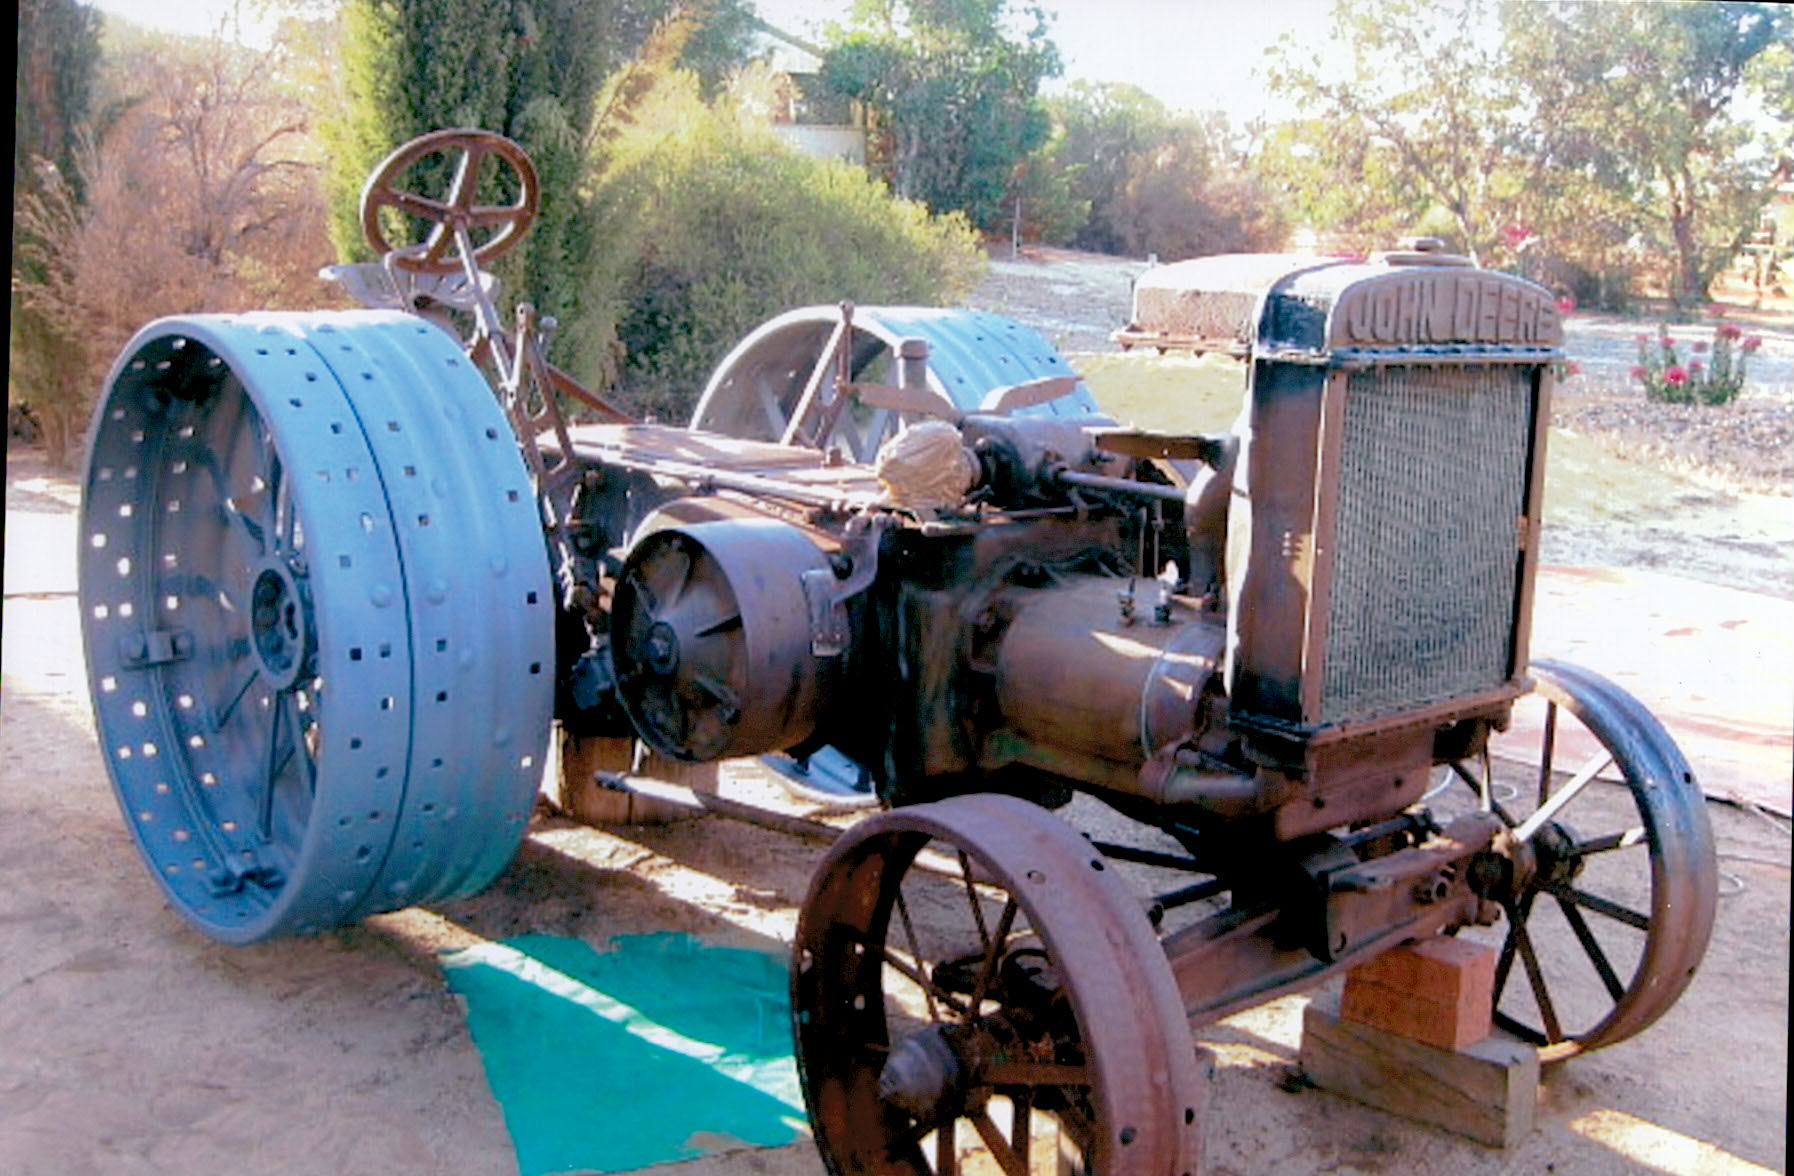 The restoration of the Model D Tractor continues